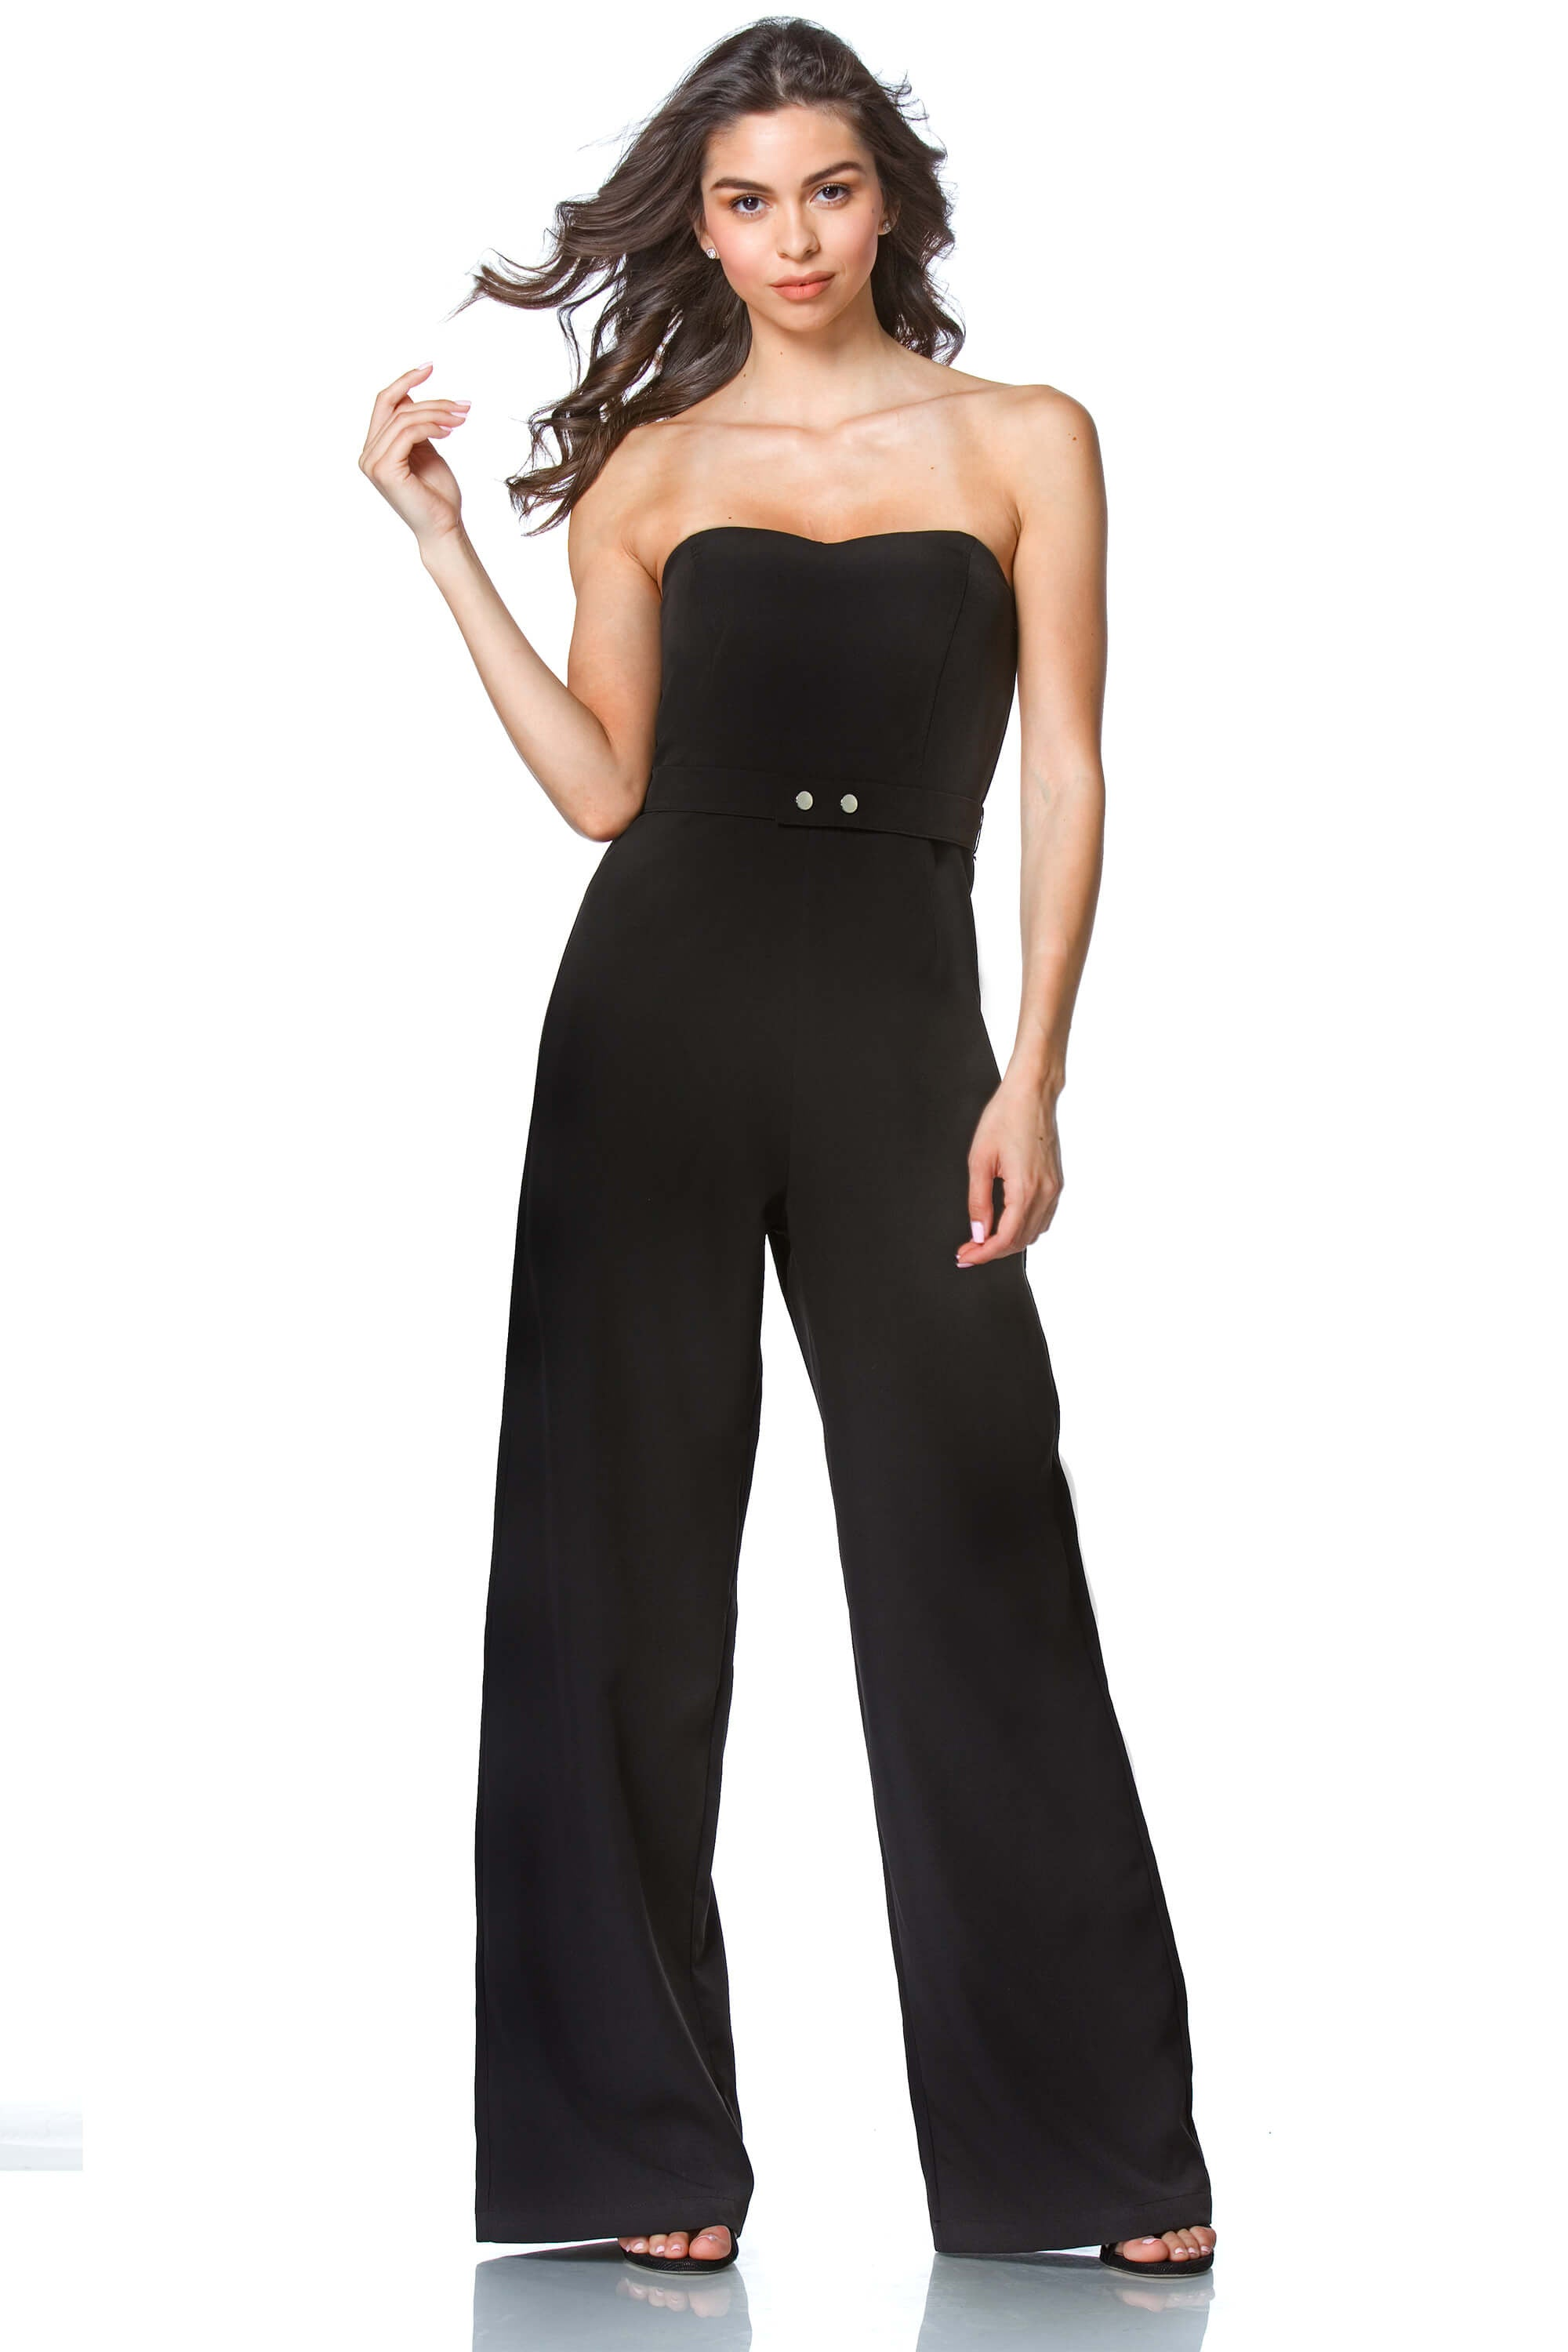 Bailey Corset Jumpsuit in Black, Dresses & Rompers - shoptoni.com